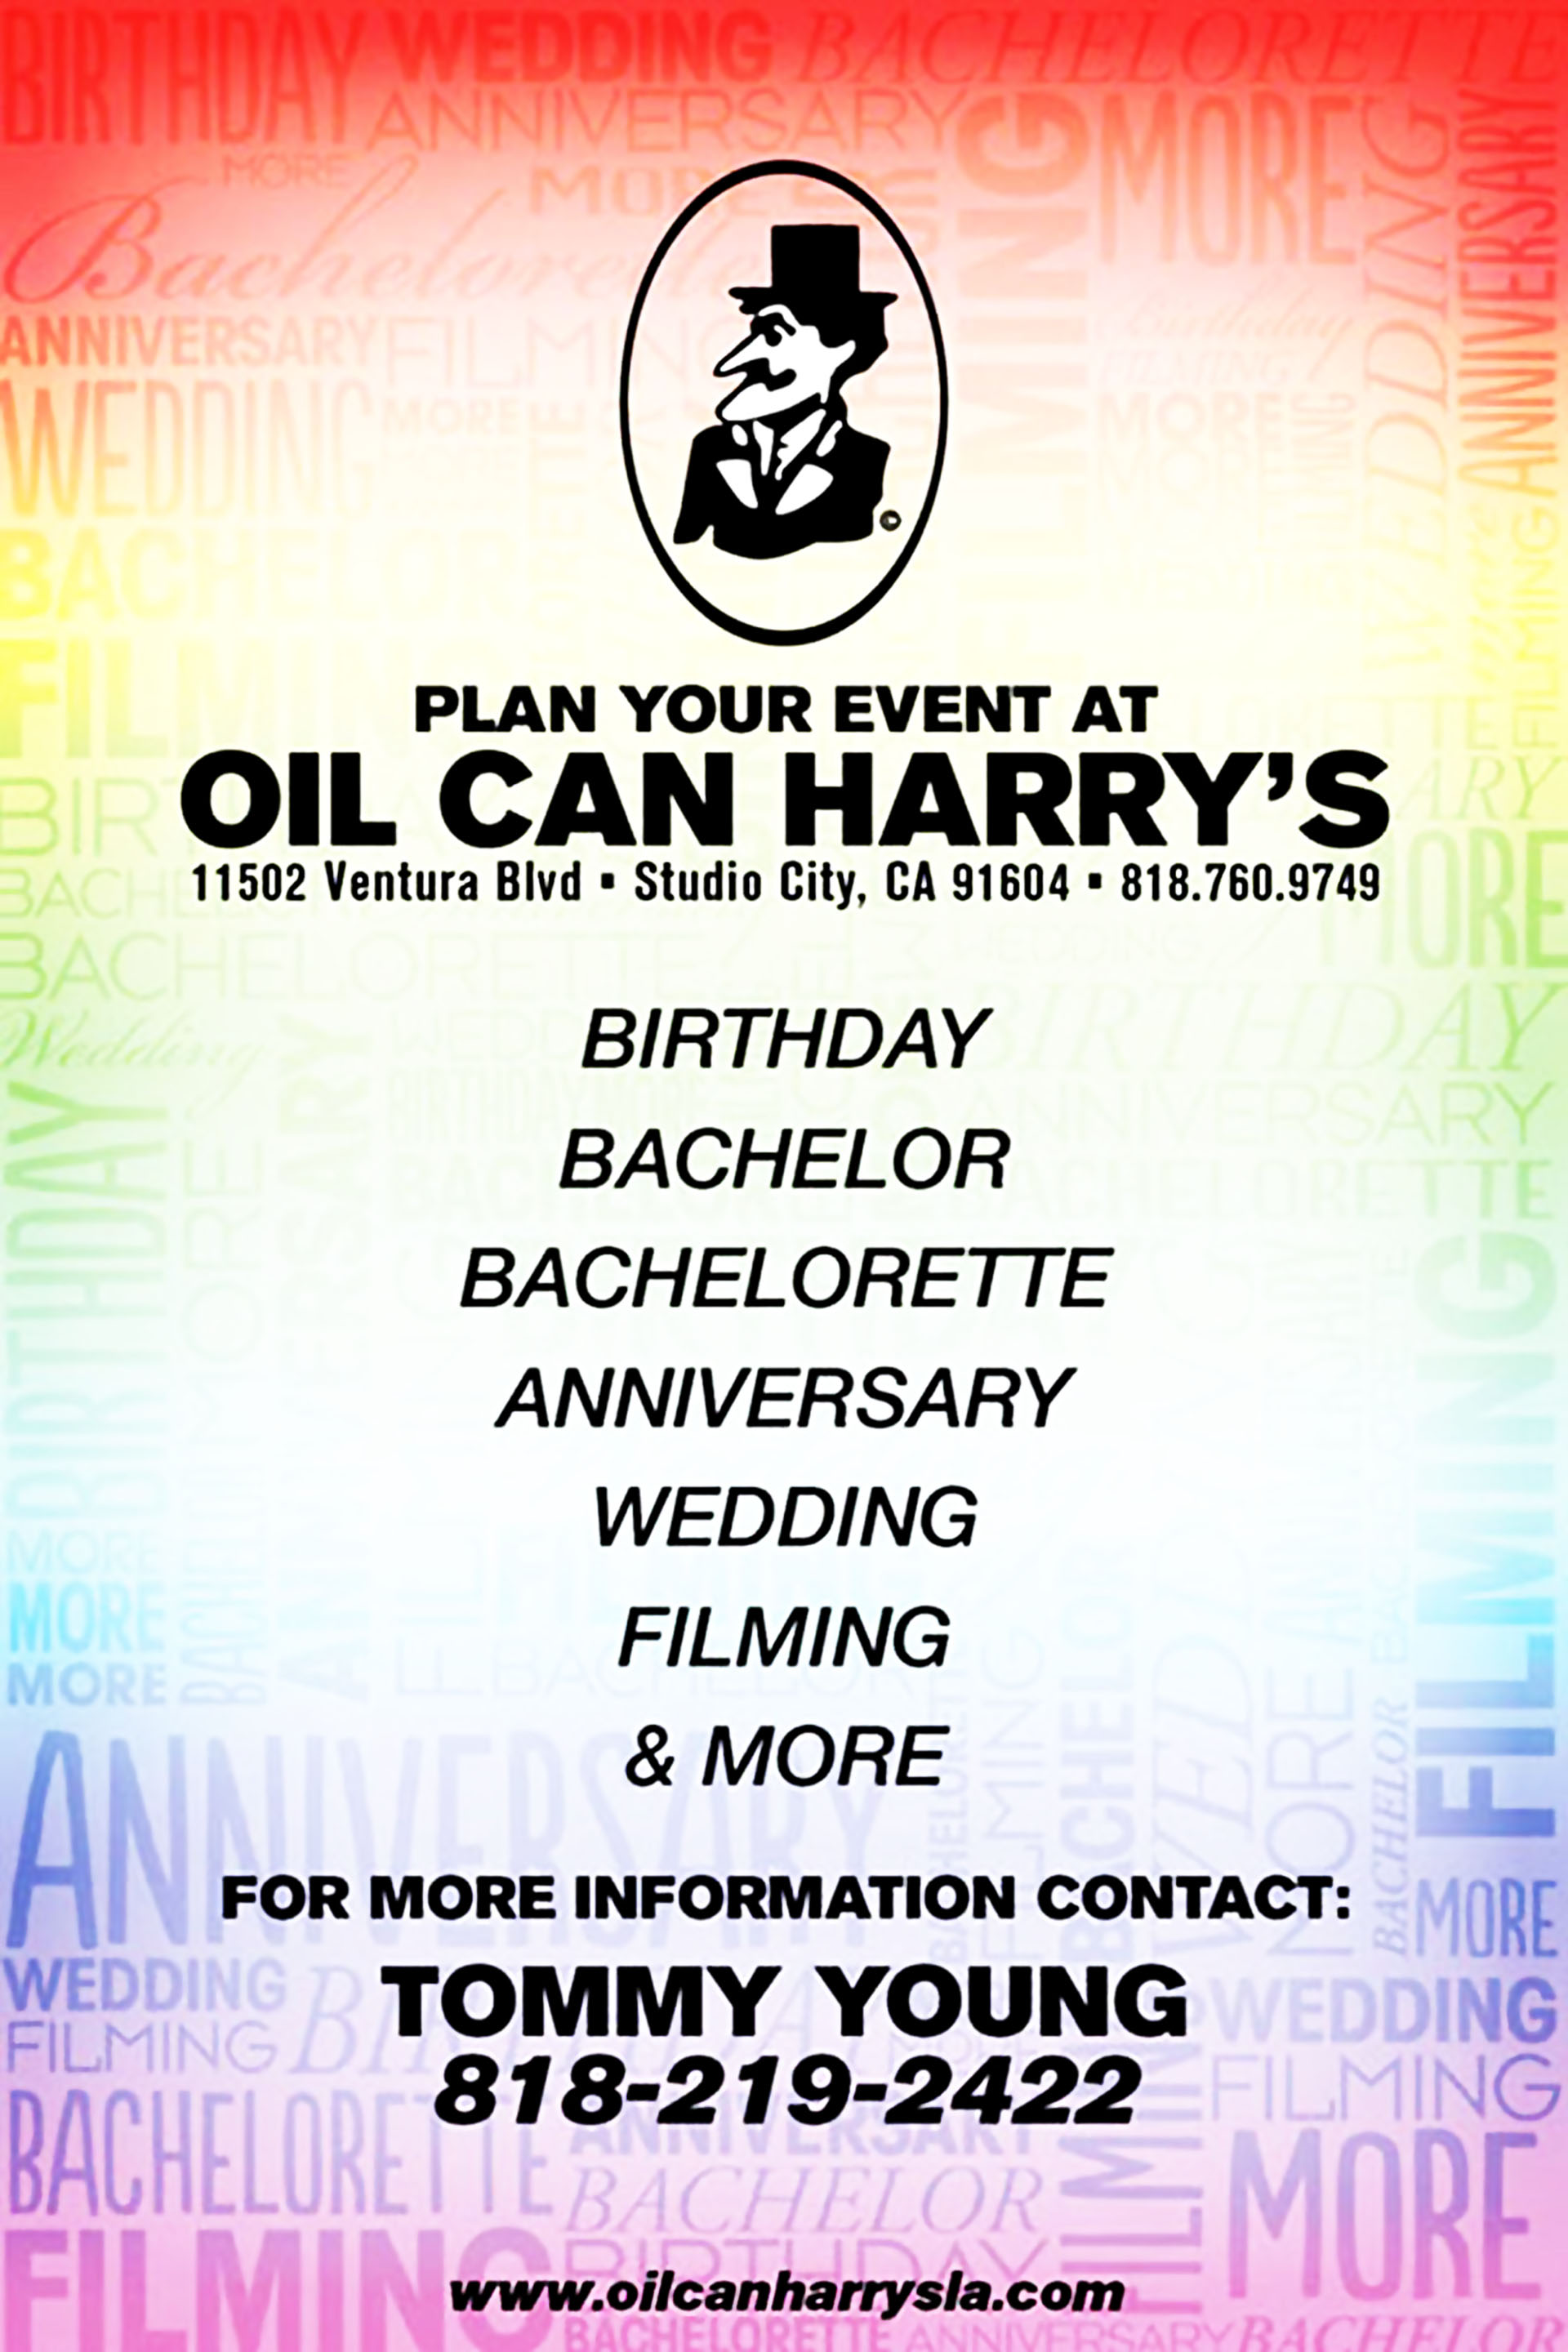 Plan Your Events at Oil Can Harry's